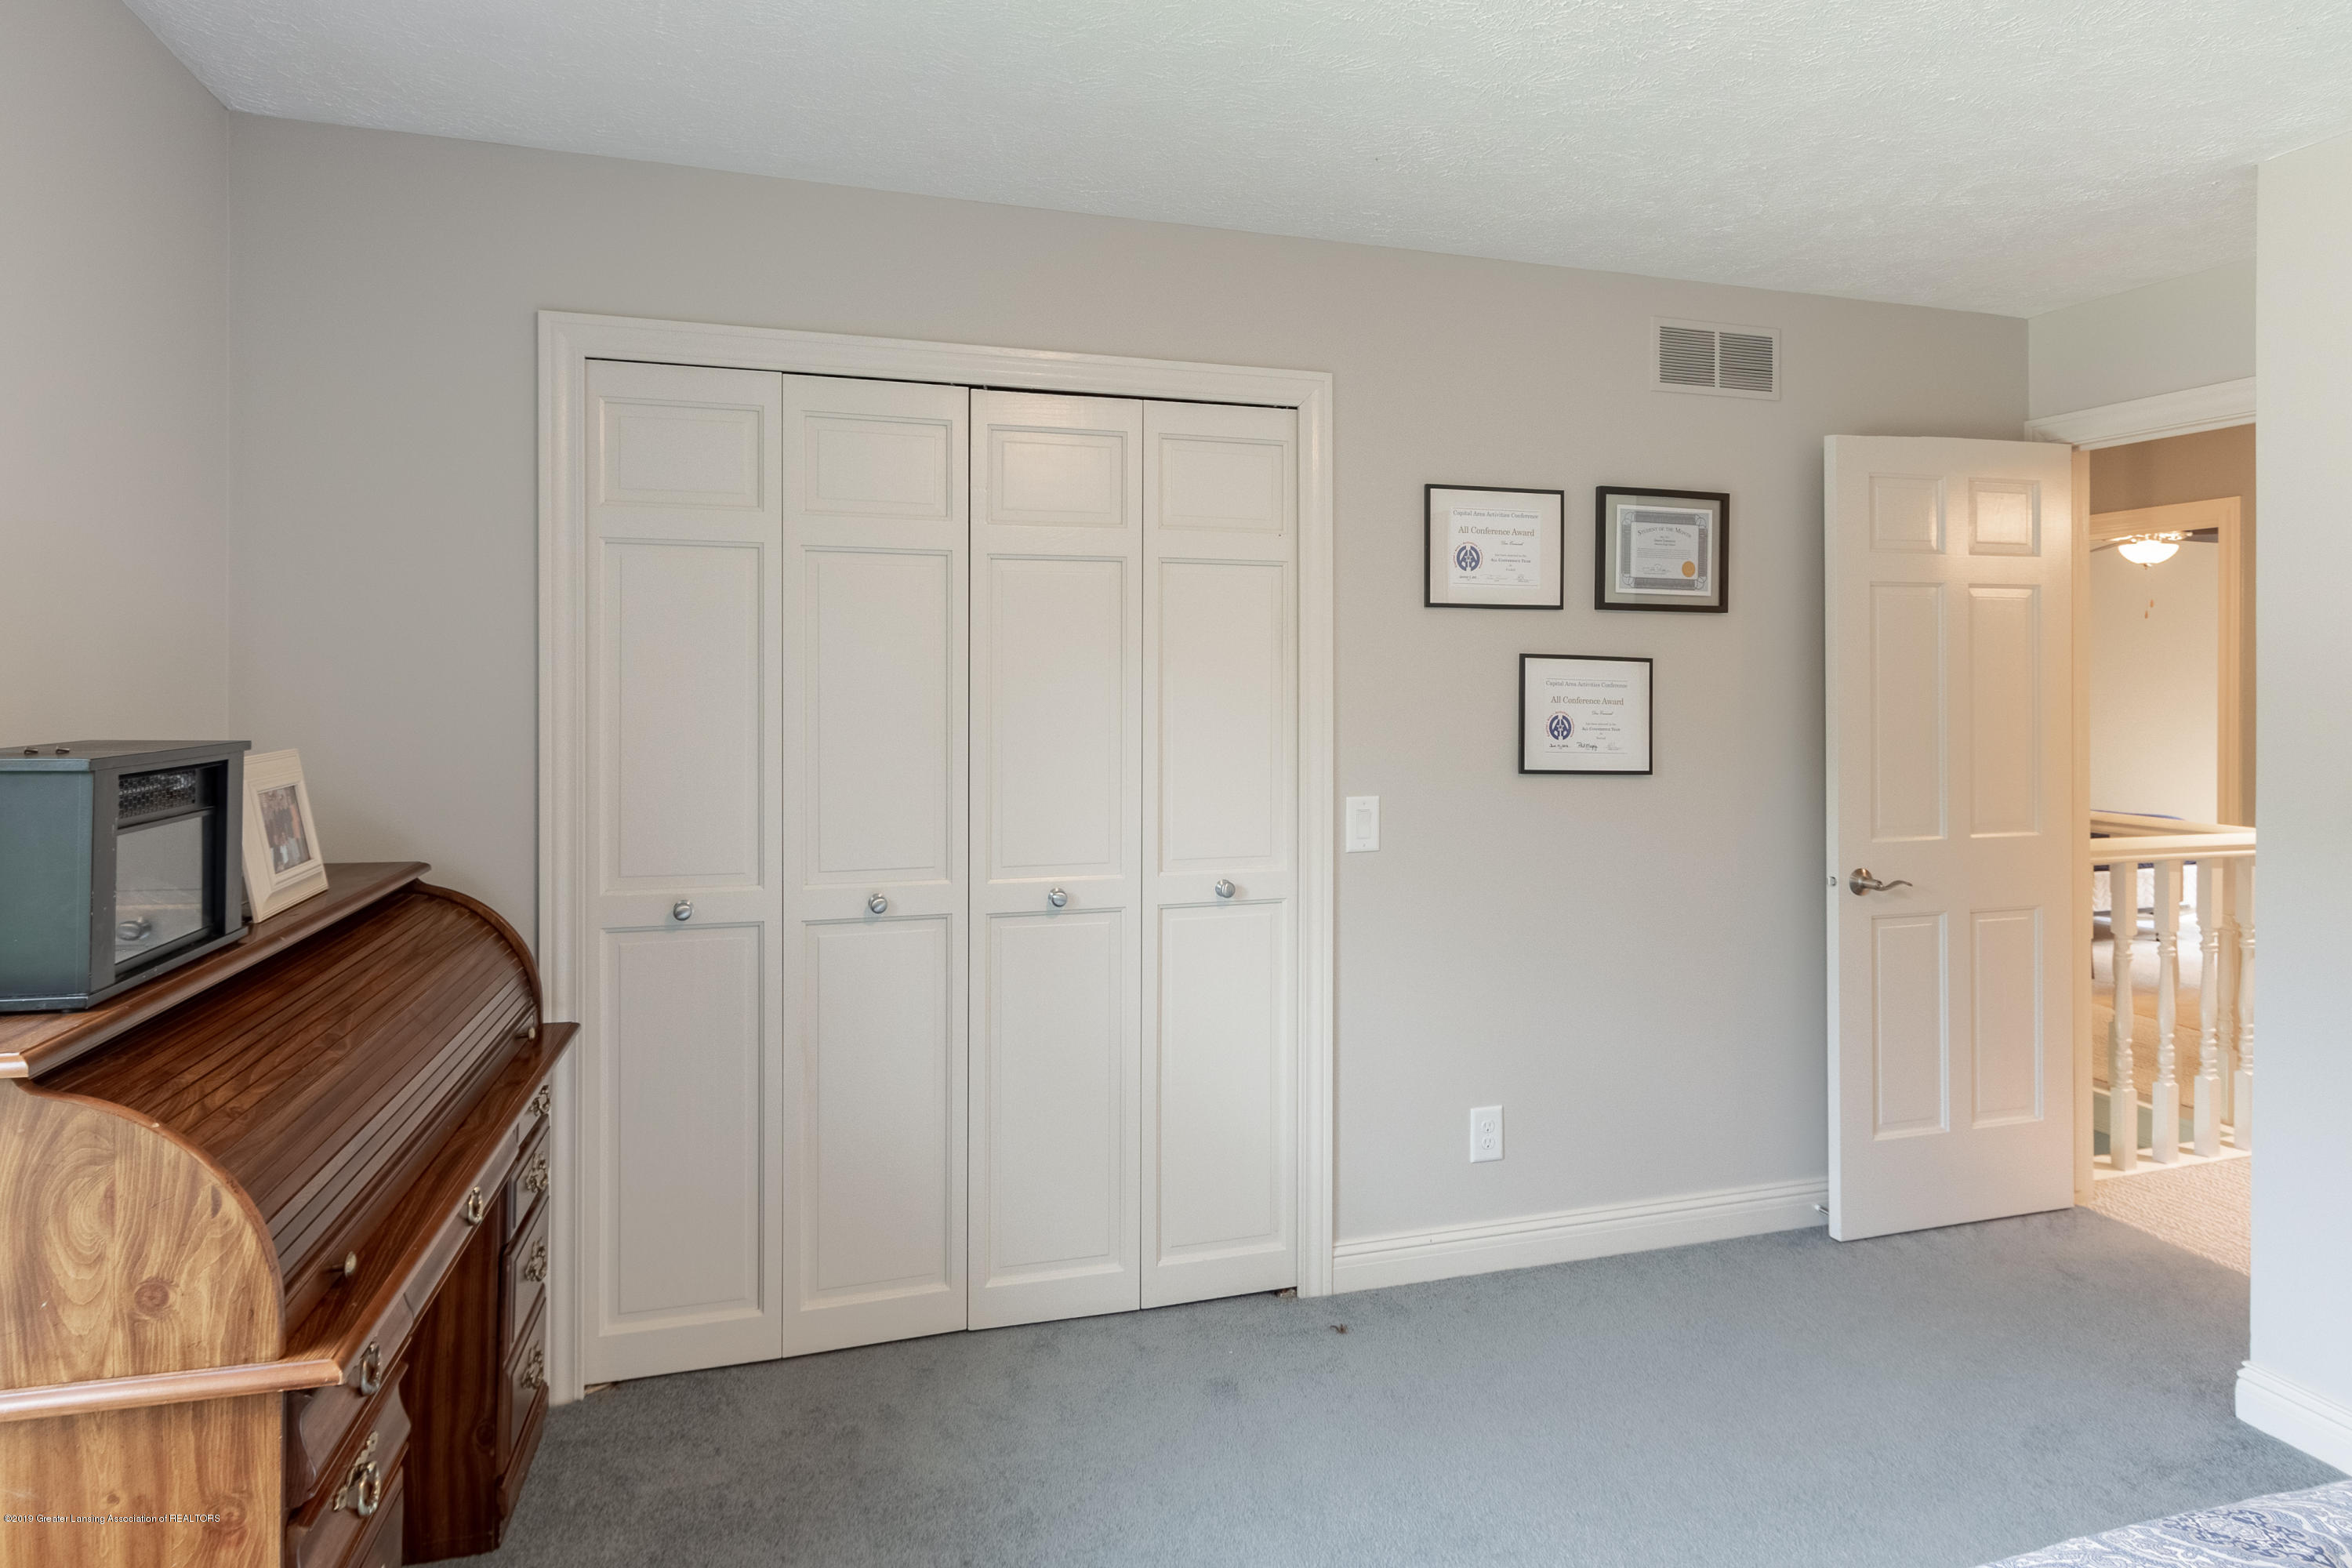 2133 Woodfield Rd - Bedroom - 43